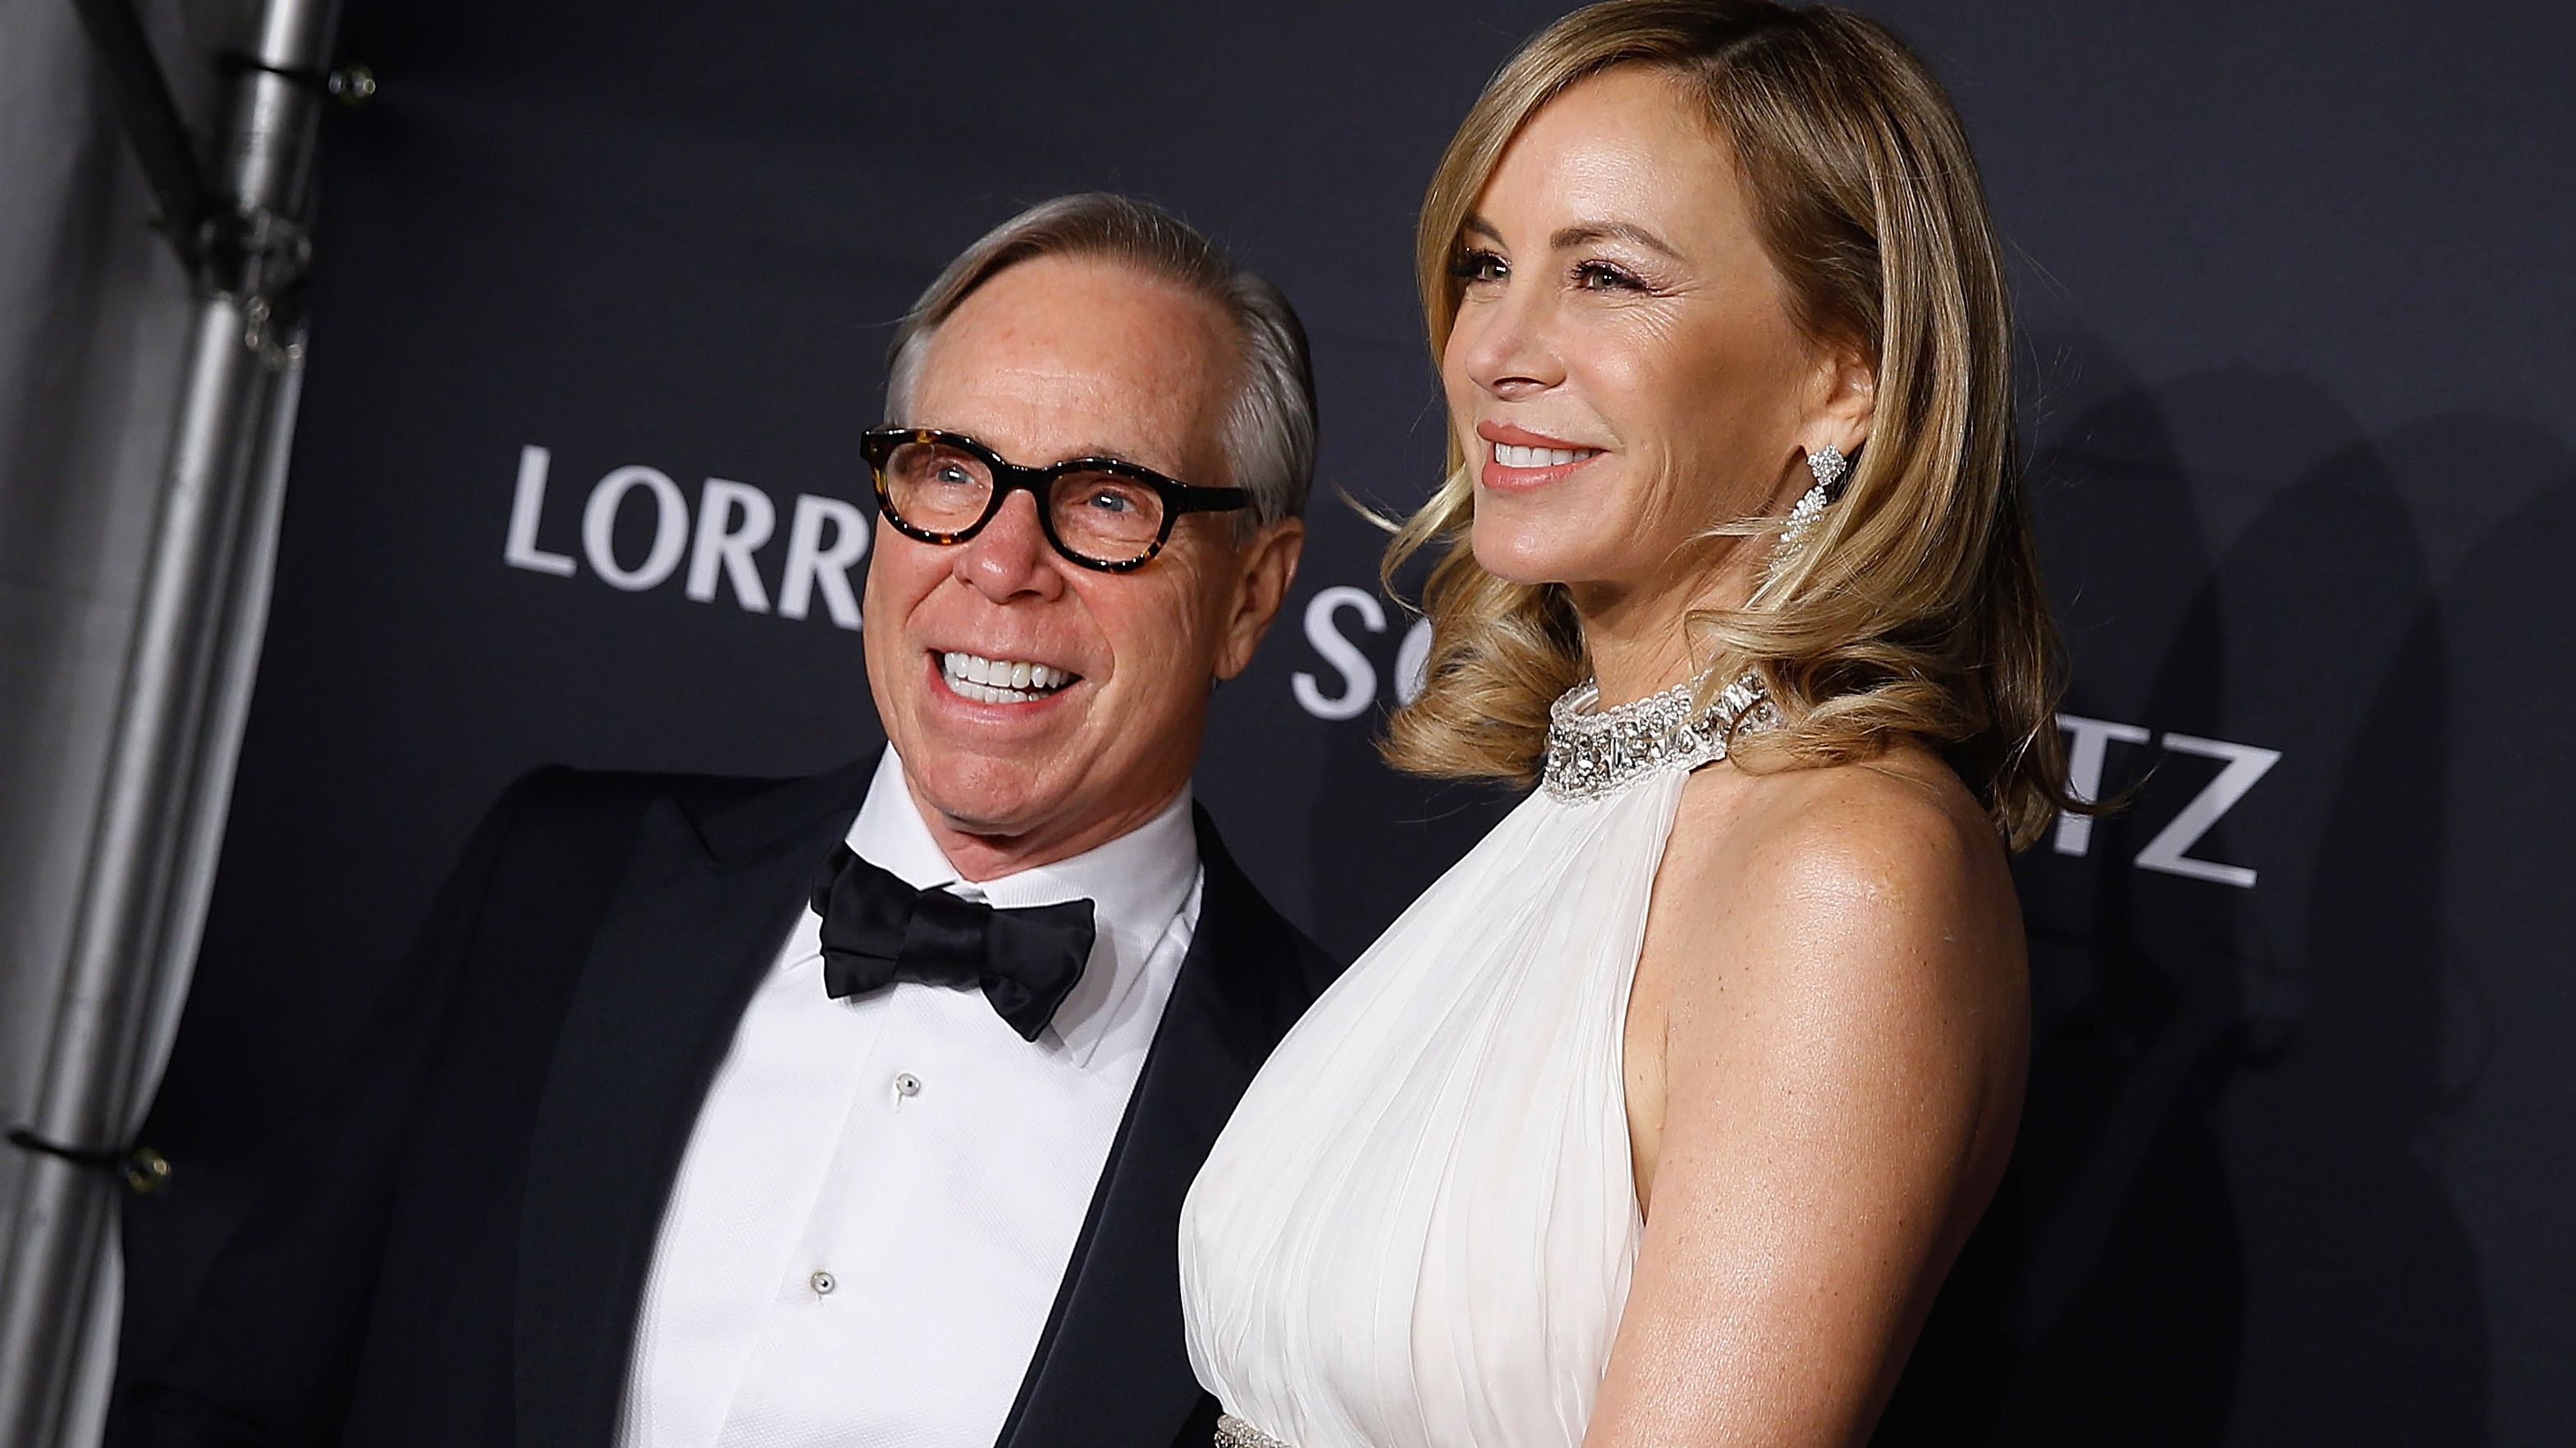 Tommy Hilfiger would be proud to dress Melania Trump